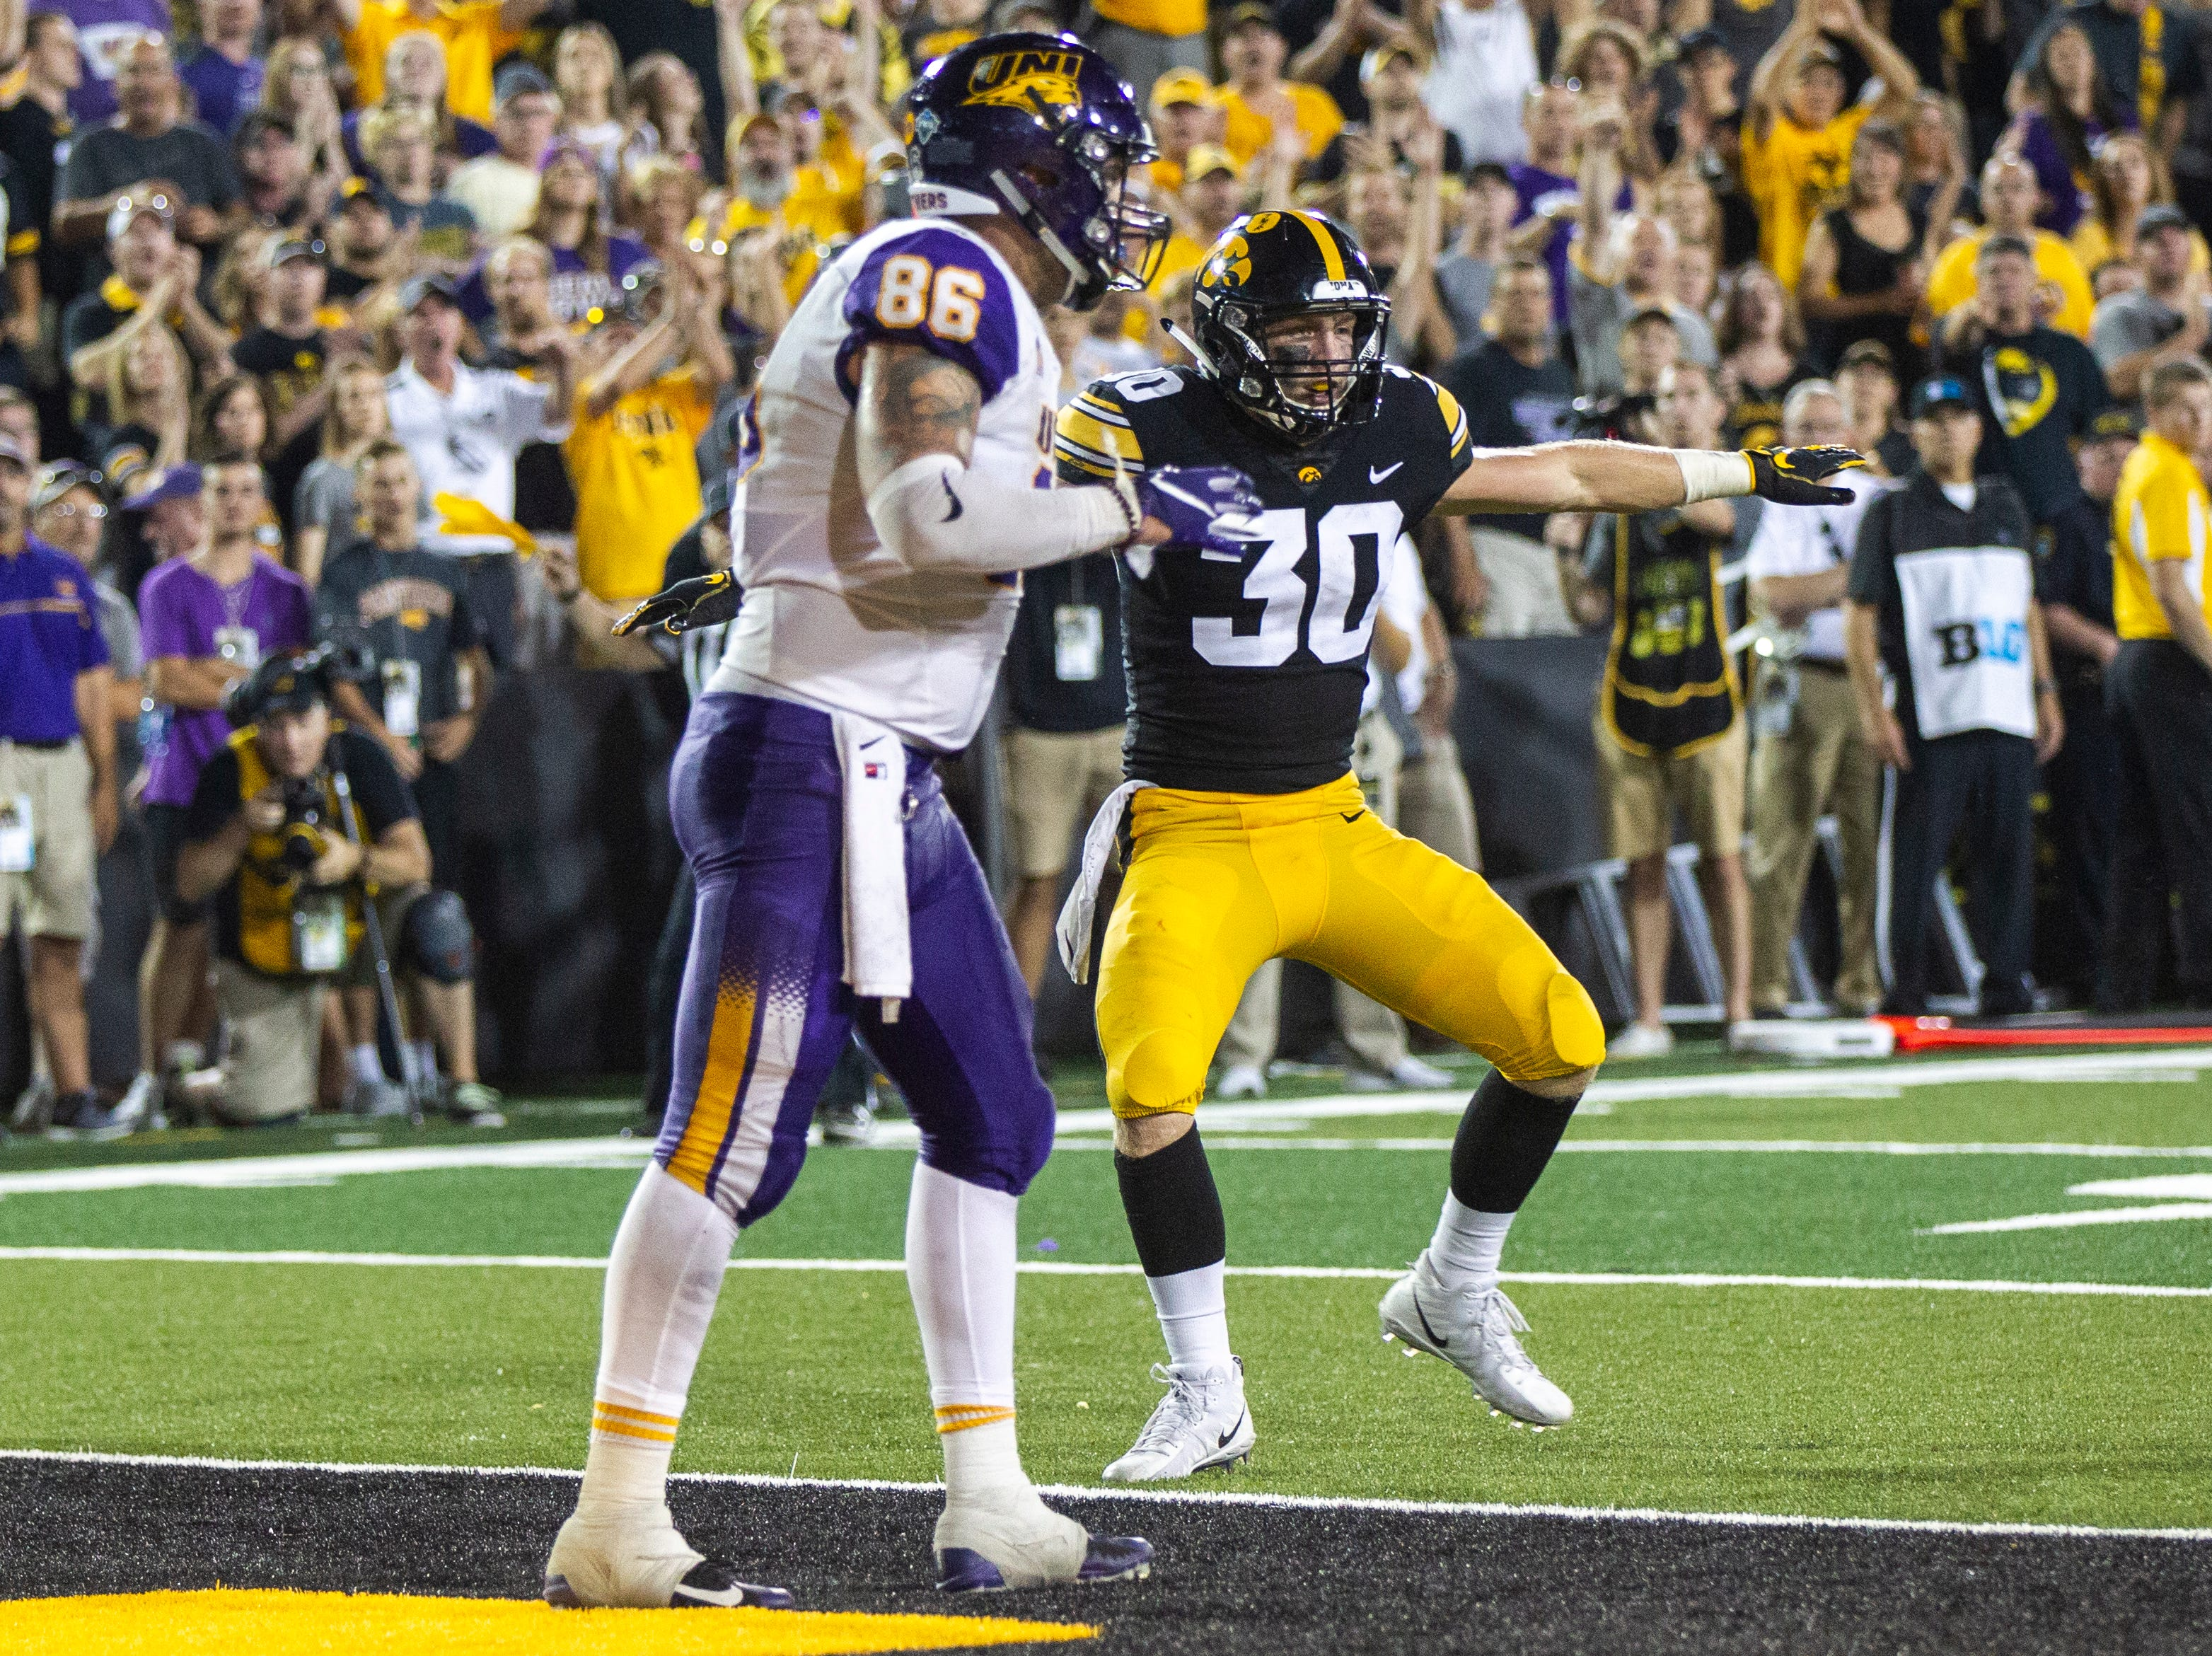 Iowa defensive back Jake Gervase (30) gestures after breaking up a pass intended for Northern Iowa tight end Briley Moore (86) during an NCAA football game on Saturday, Sept. 15, 2018, at Kinnick Stadium in Iowa City. Gervase was called for defensive pass interference on the play.